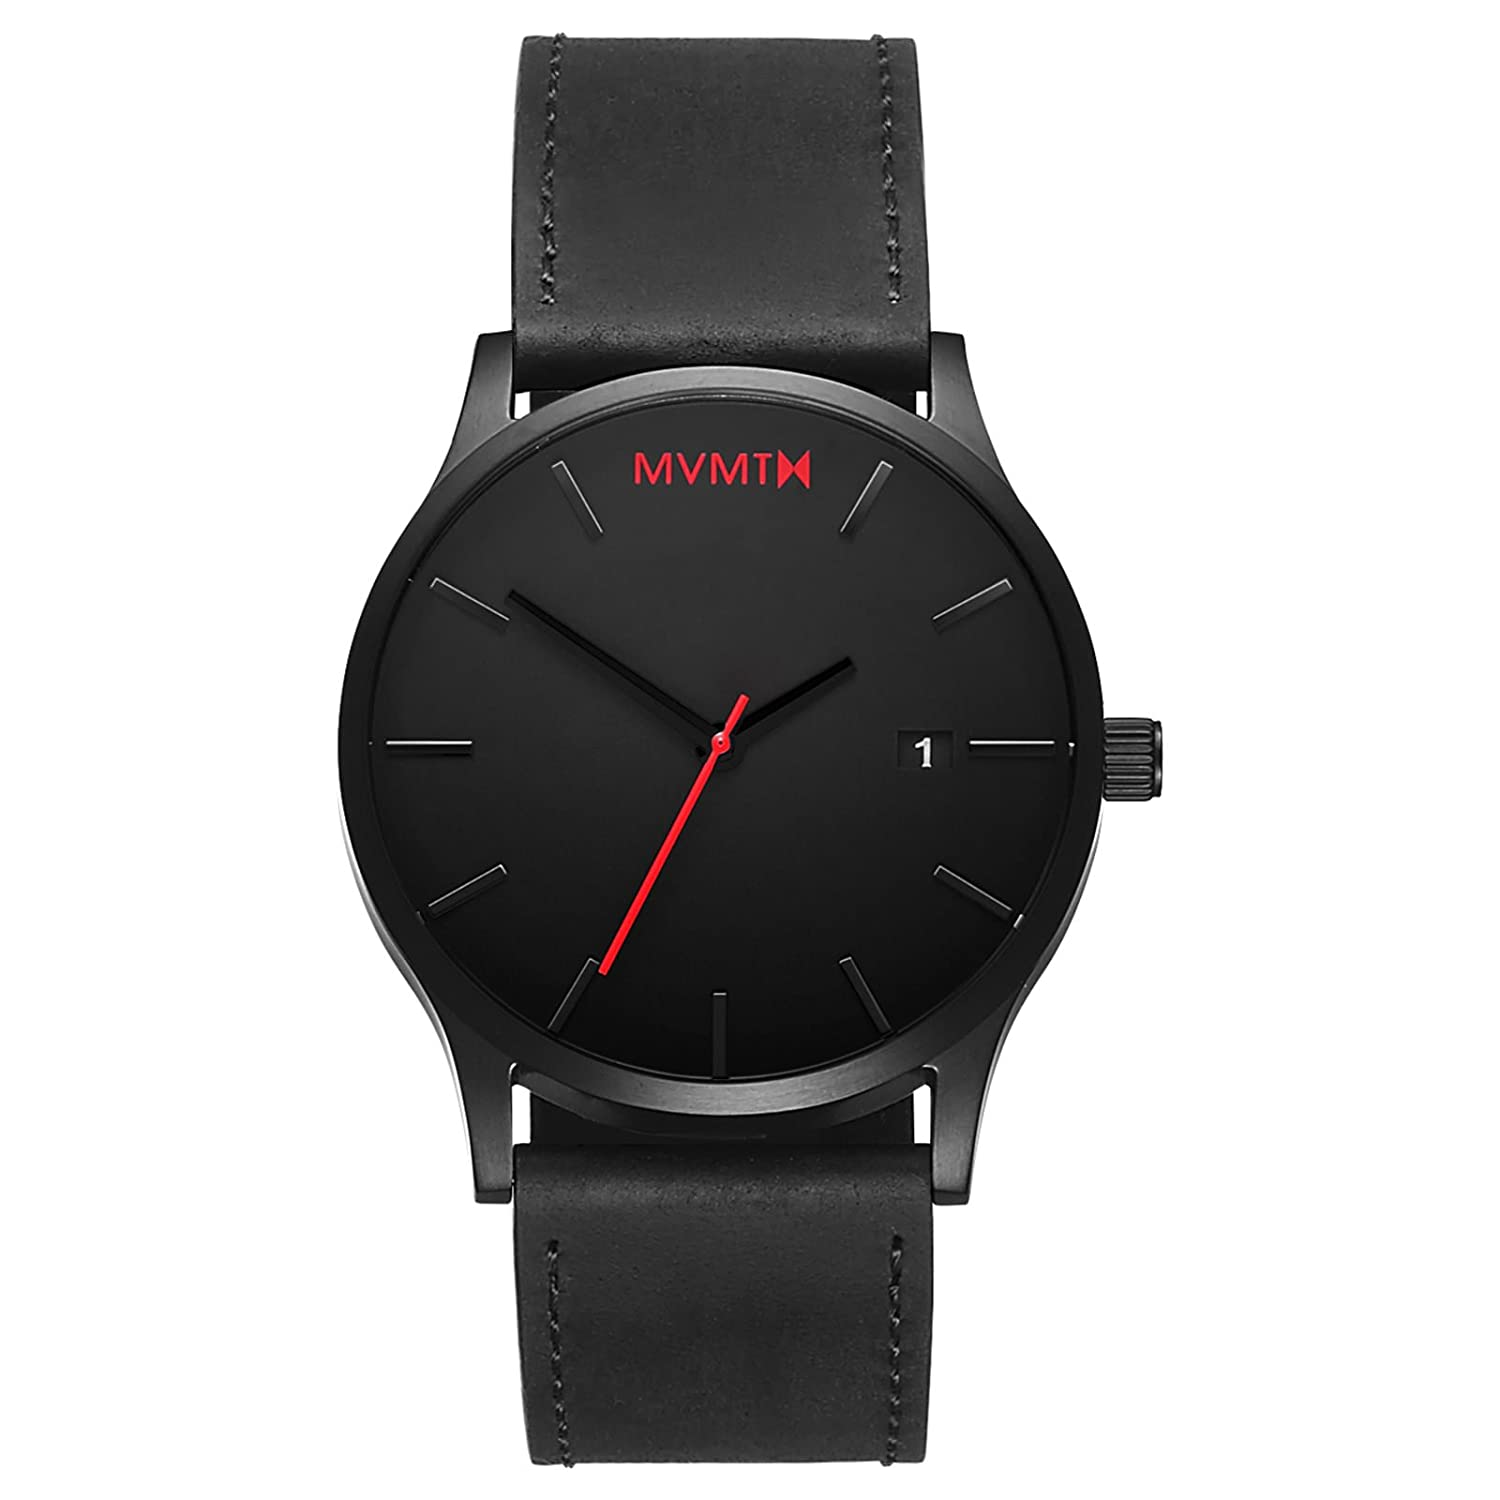 MVMT Classic Black Leather, Black Watches, Date Display, Automatic Watch